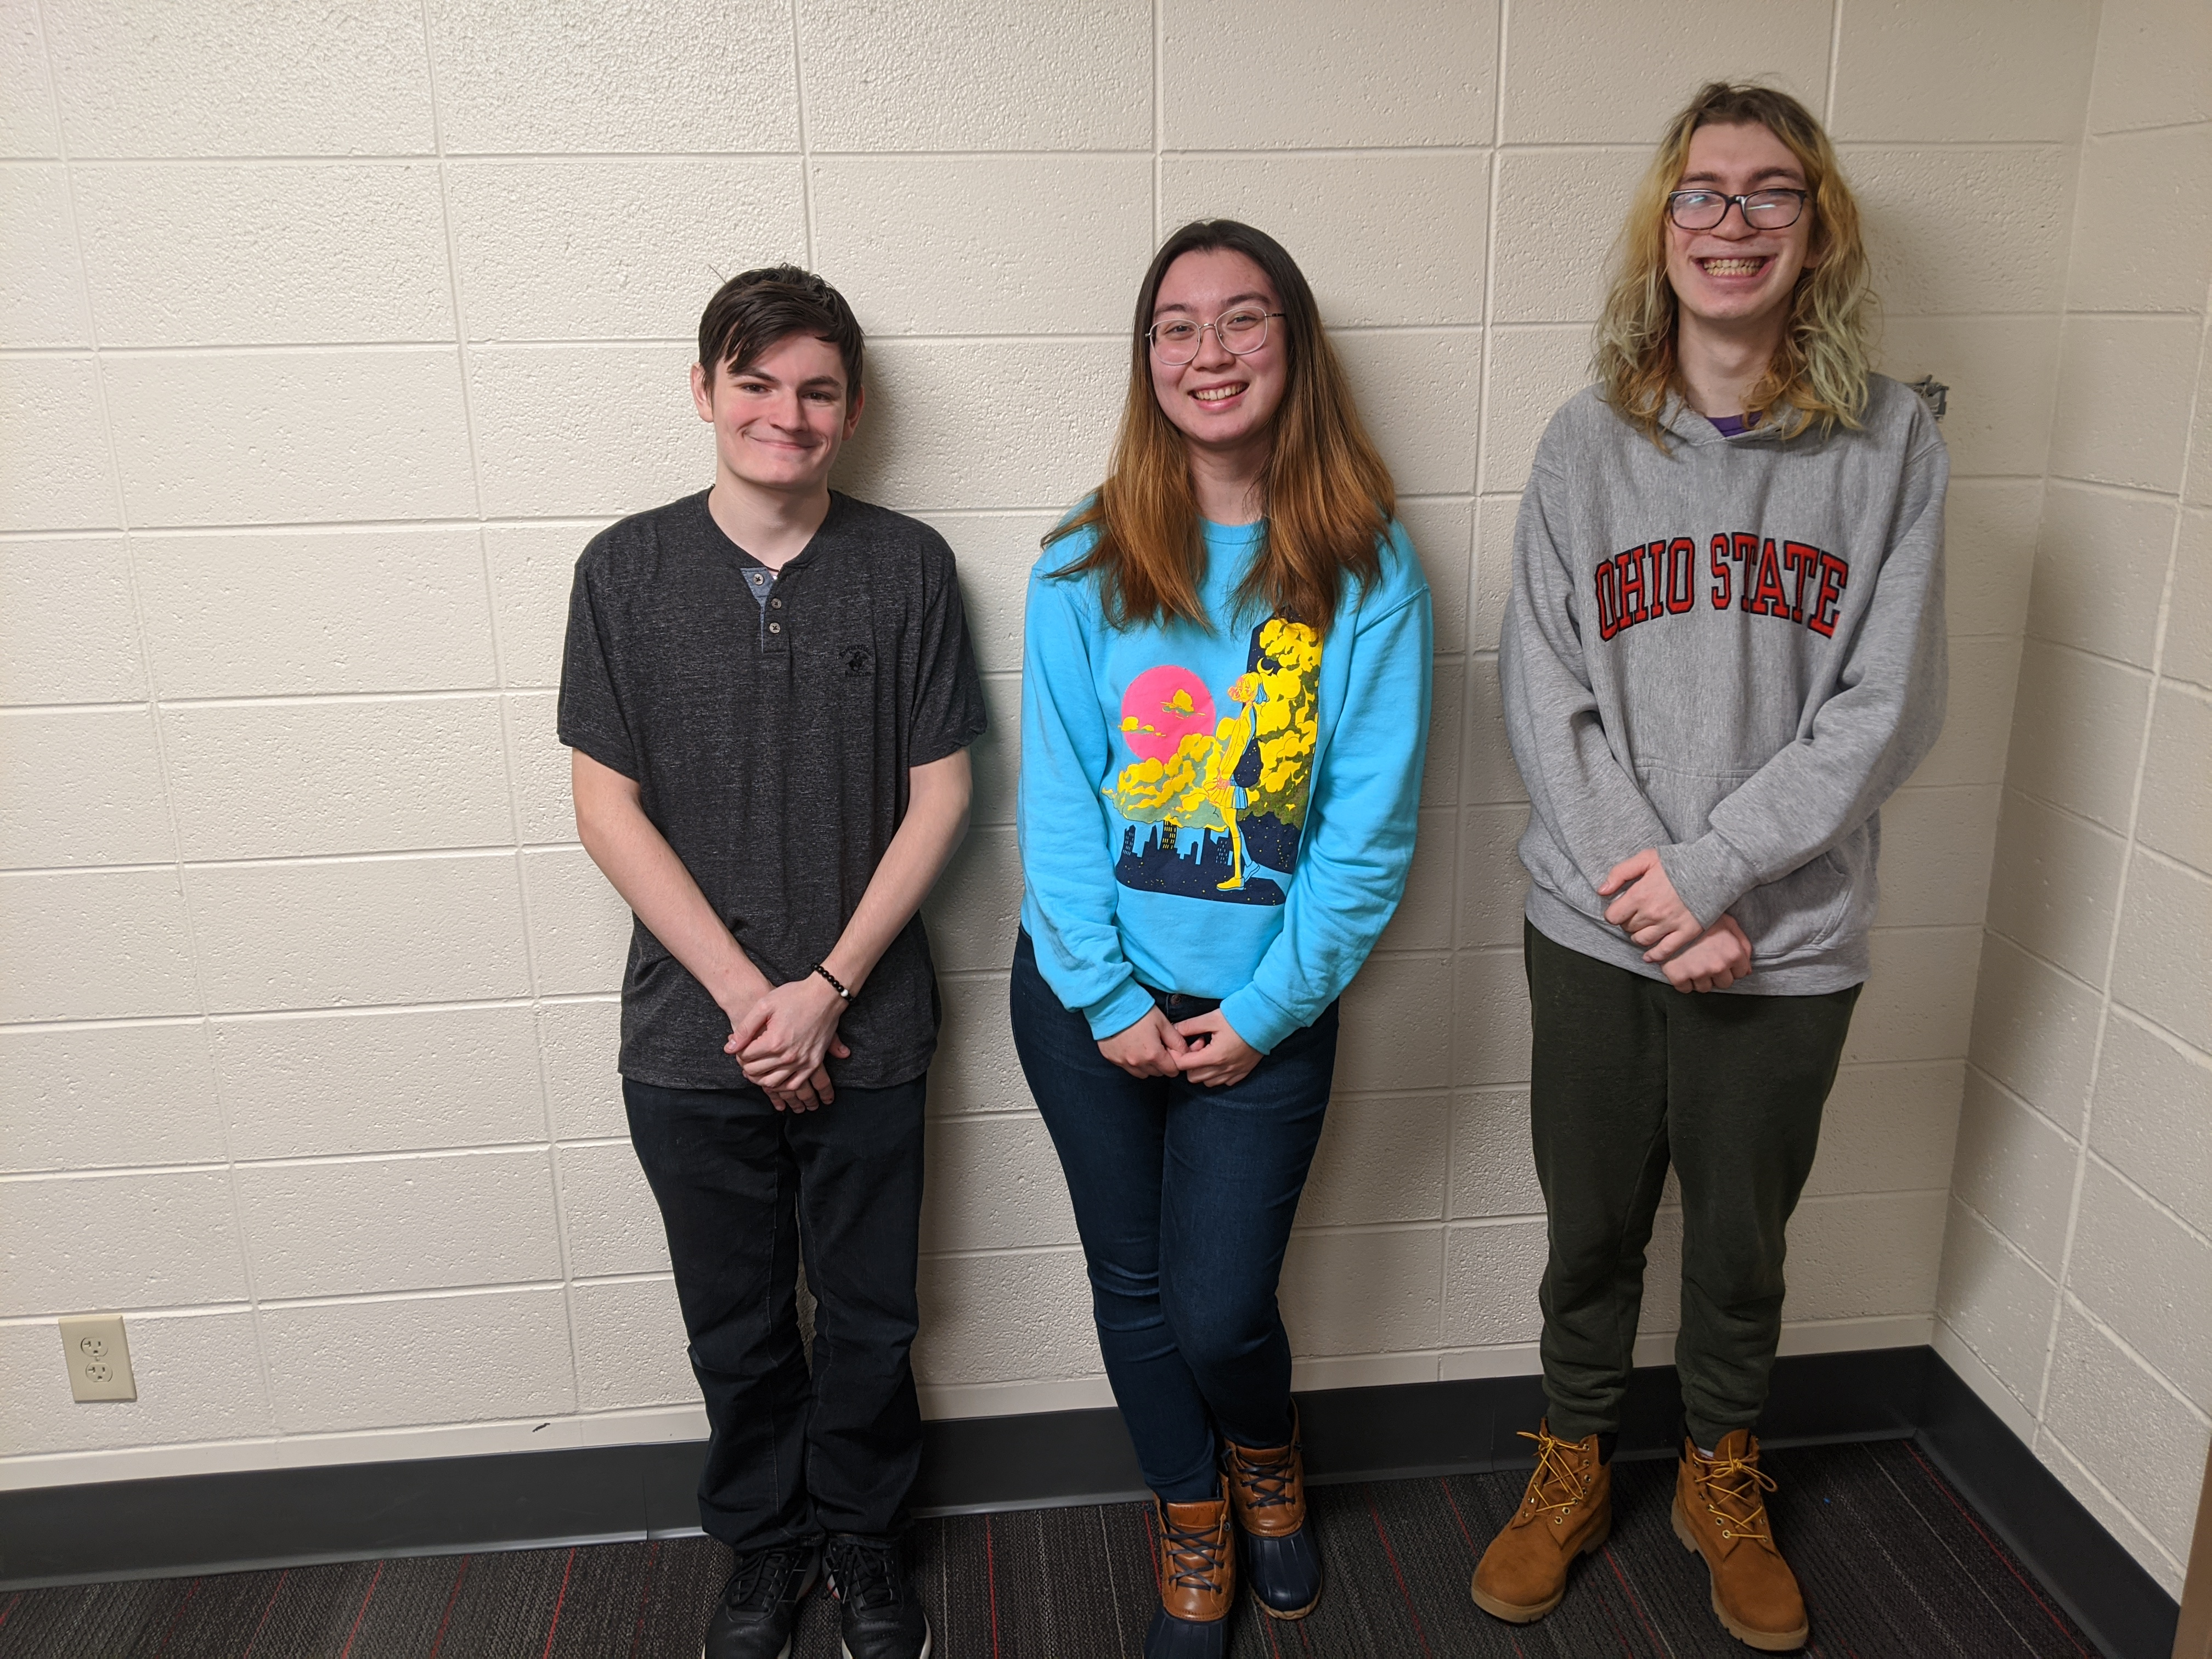 From left to right: Speesquack, Holli, and dashdude, members of OSU's MGTA team.